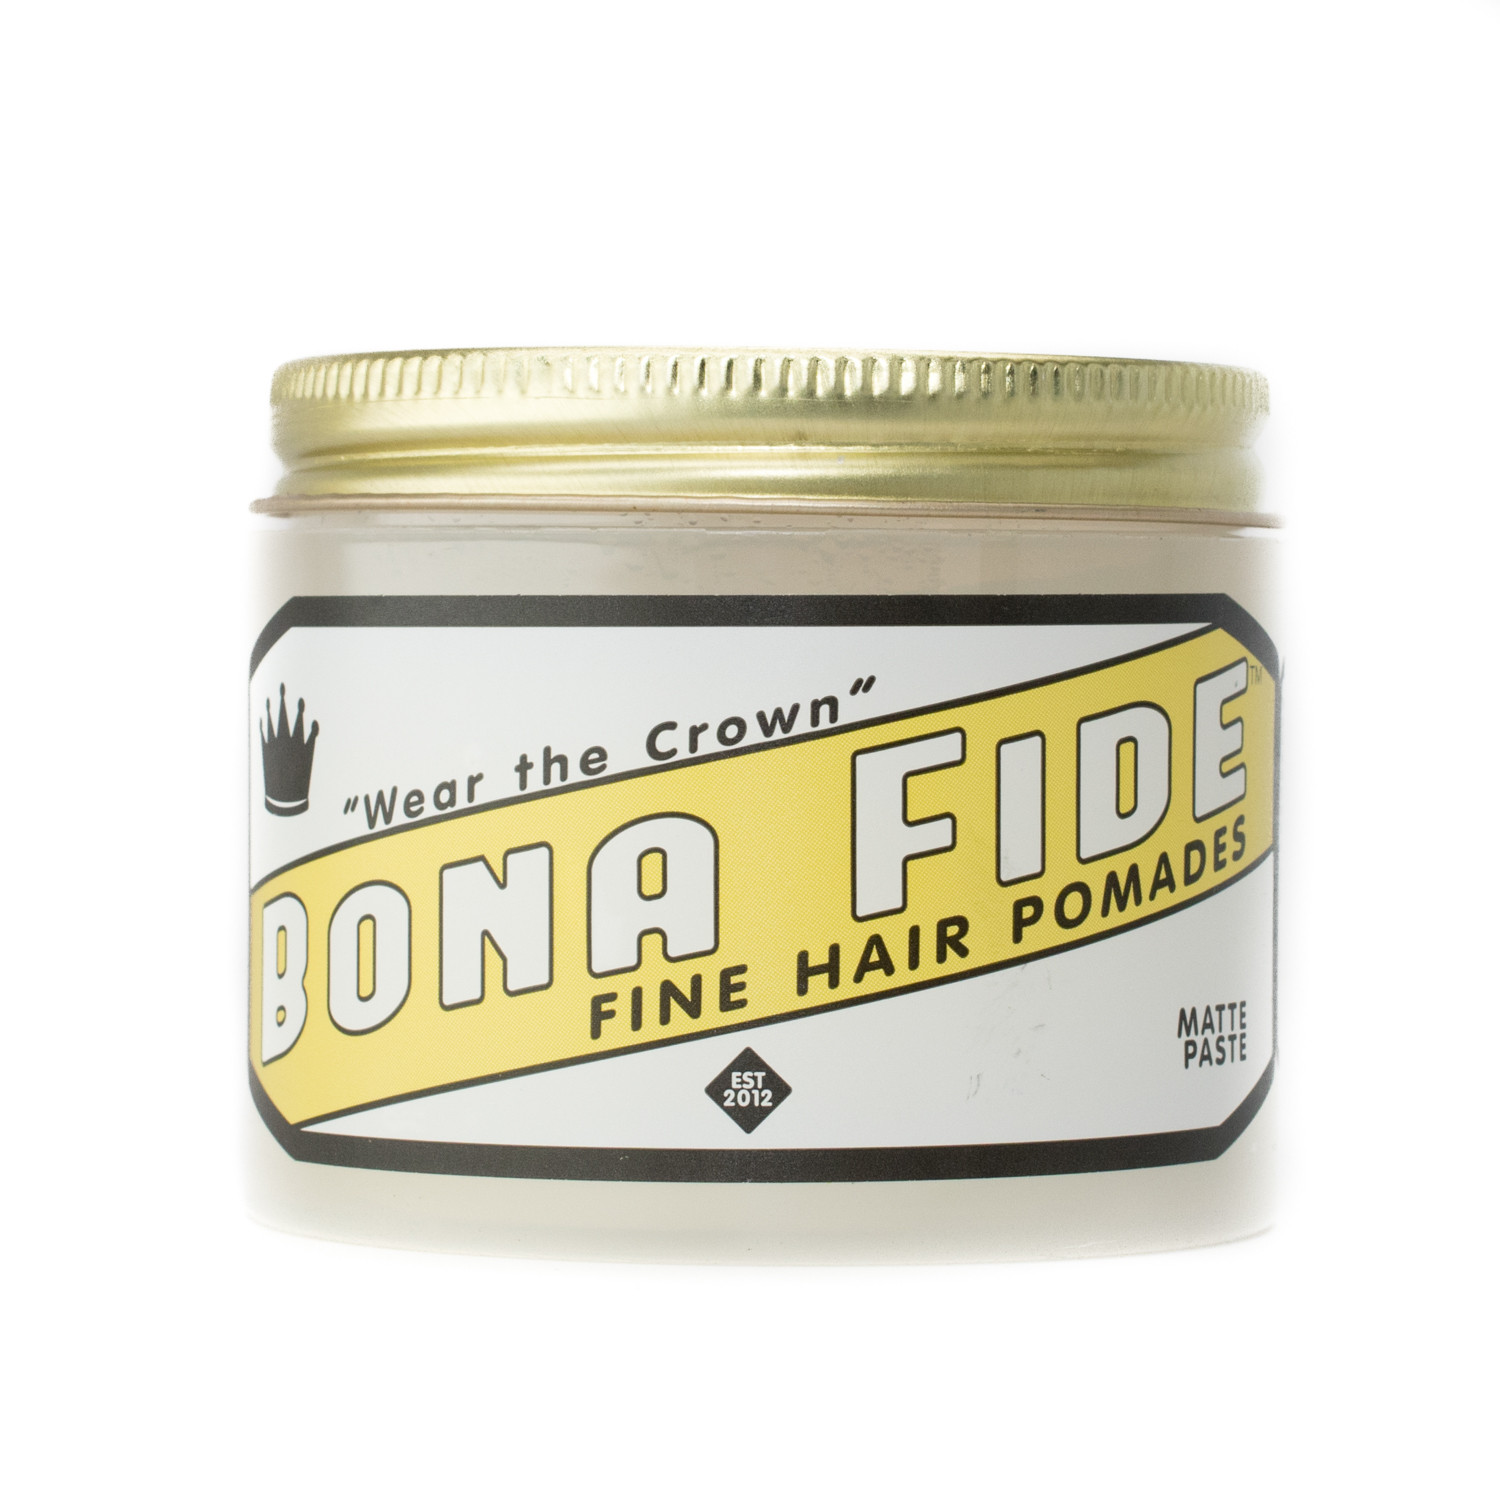 Bona Fide Matte Paste (Water Based) ขนาด 4 oz.